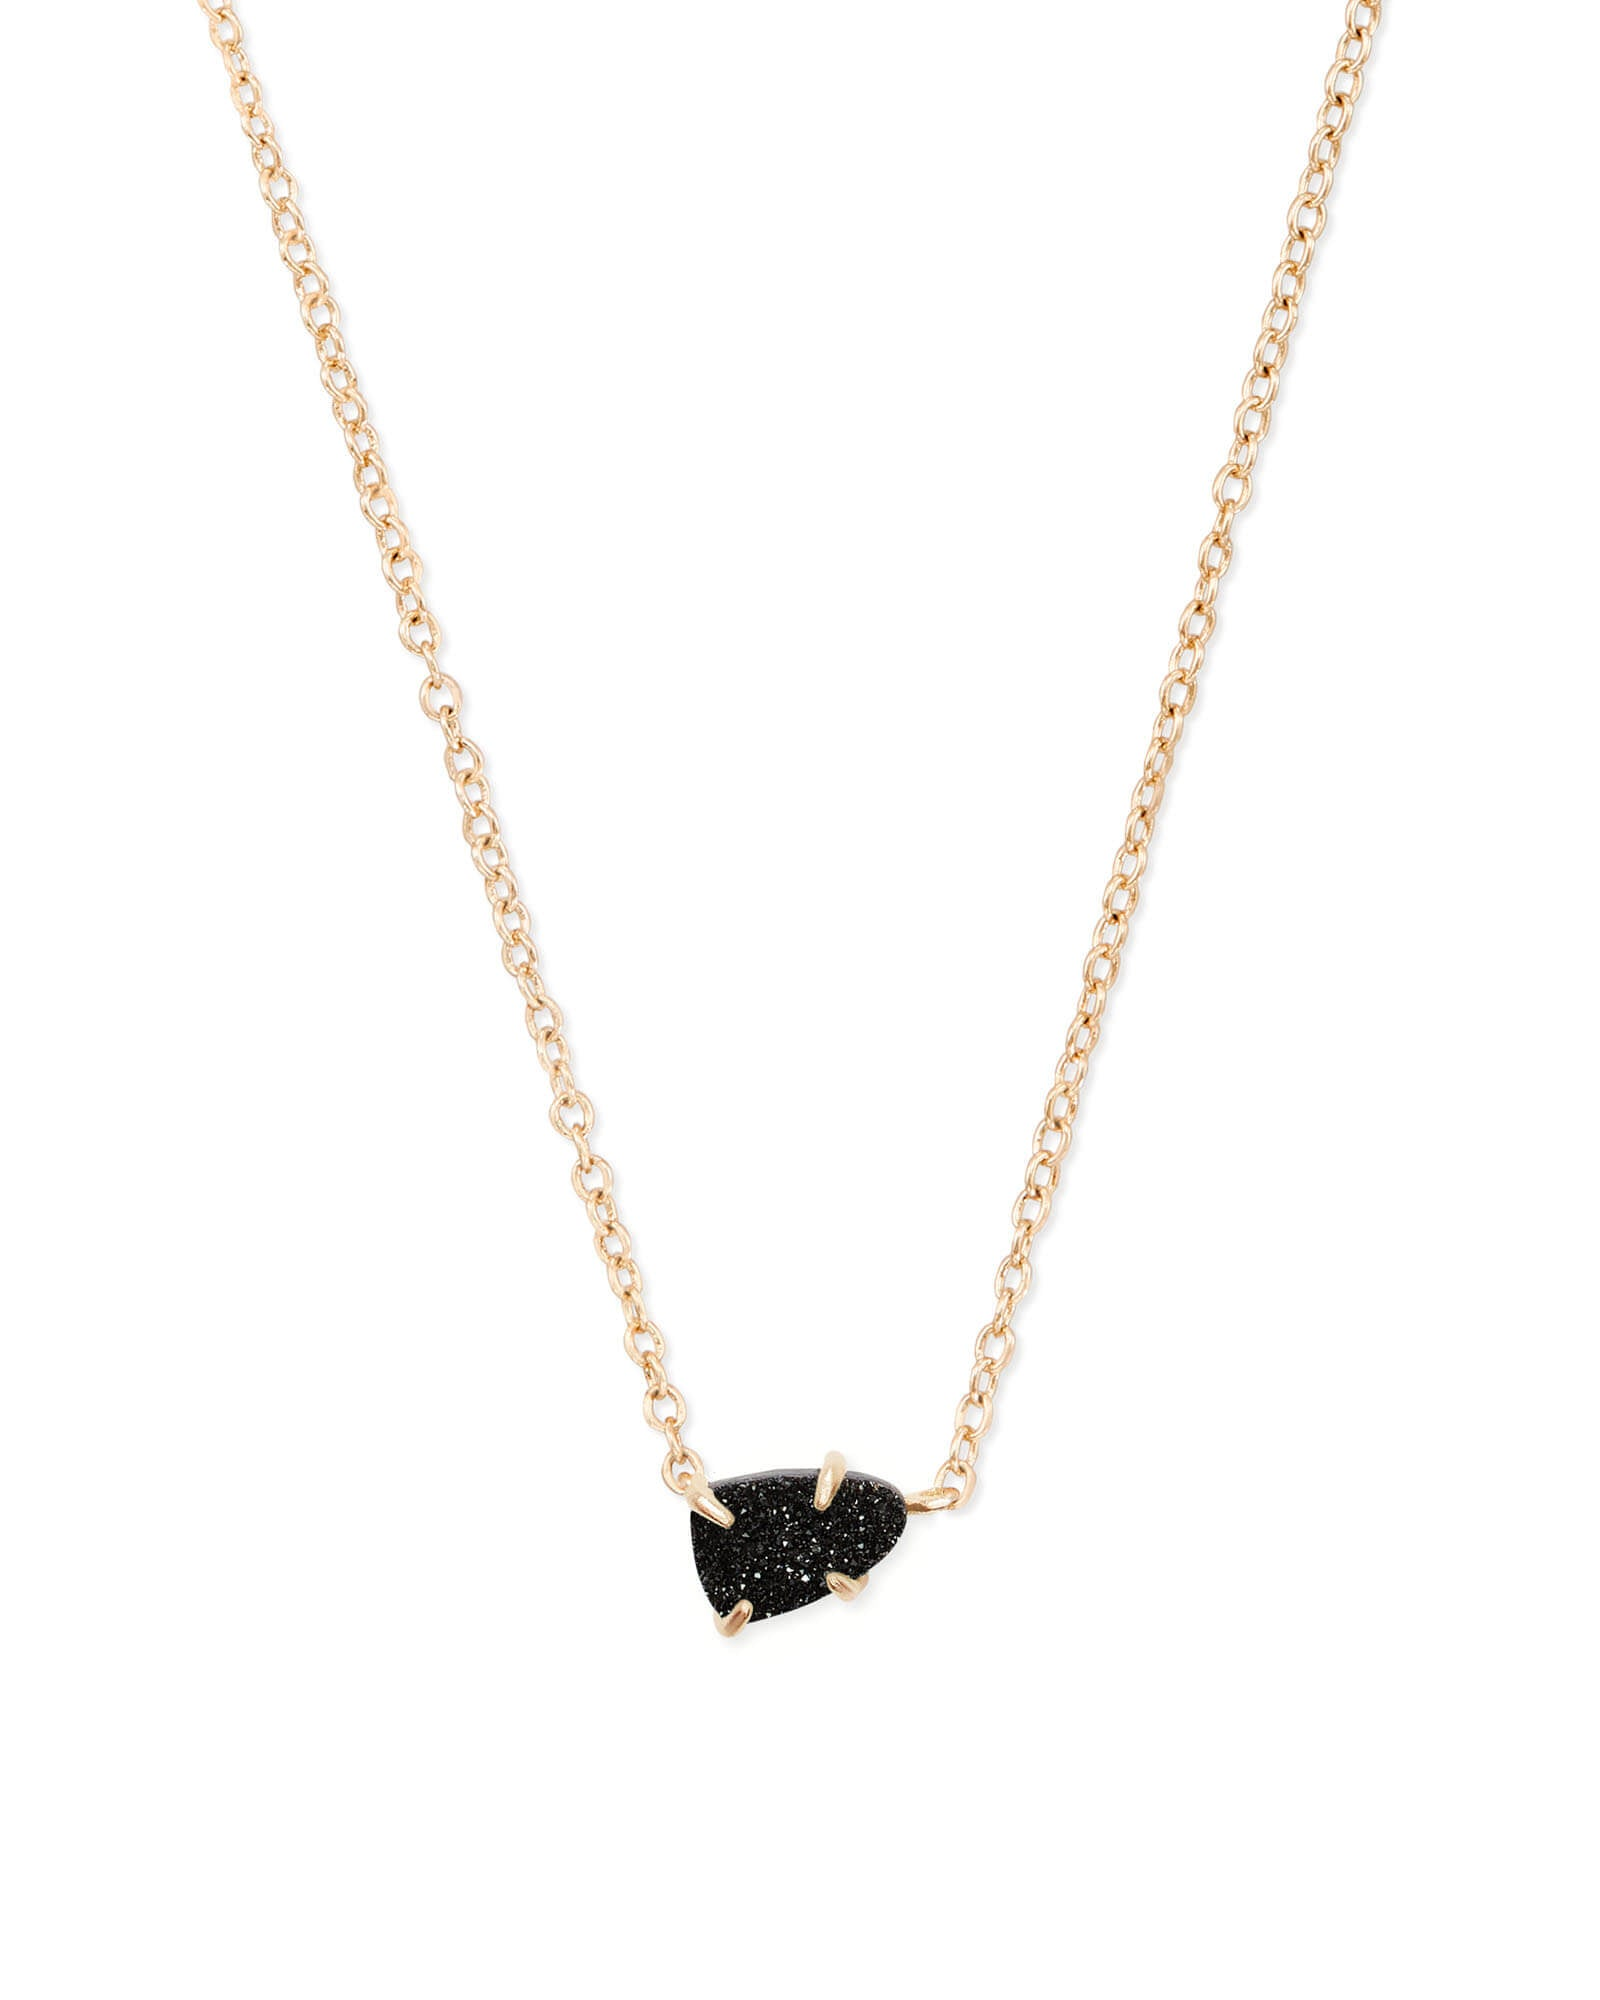 Helga Gold Pendant Necklace in Black Drusy